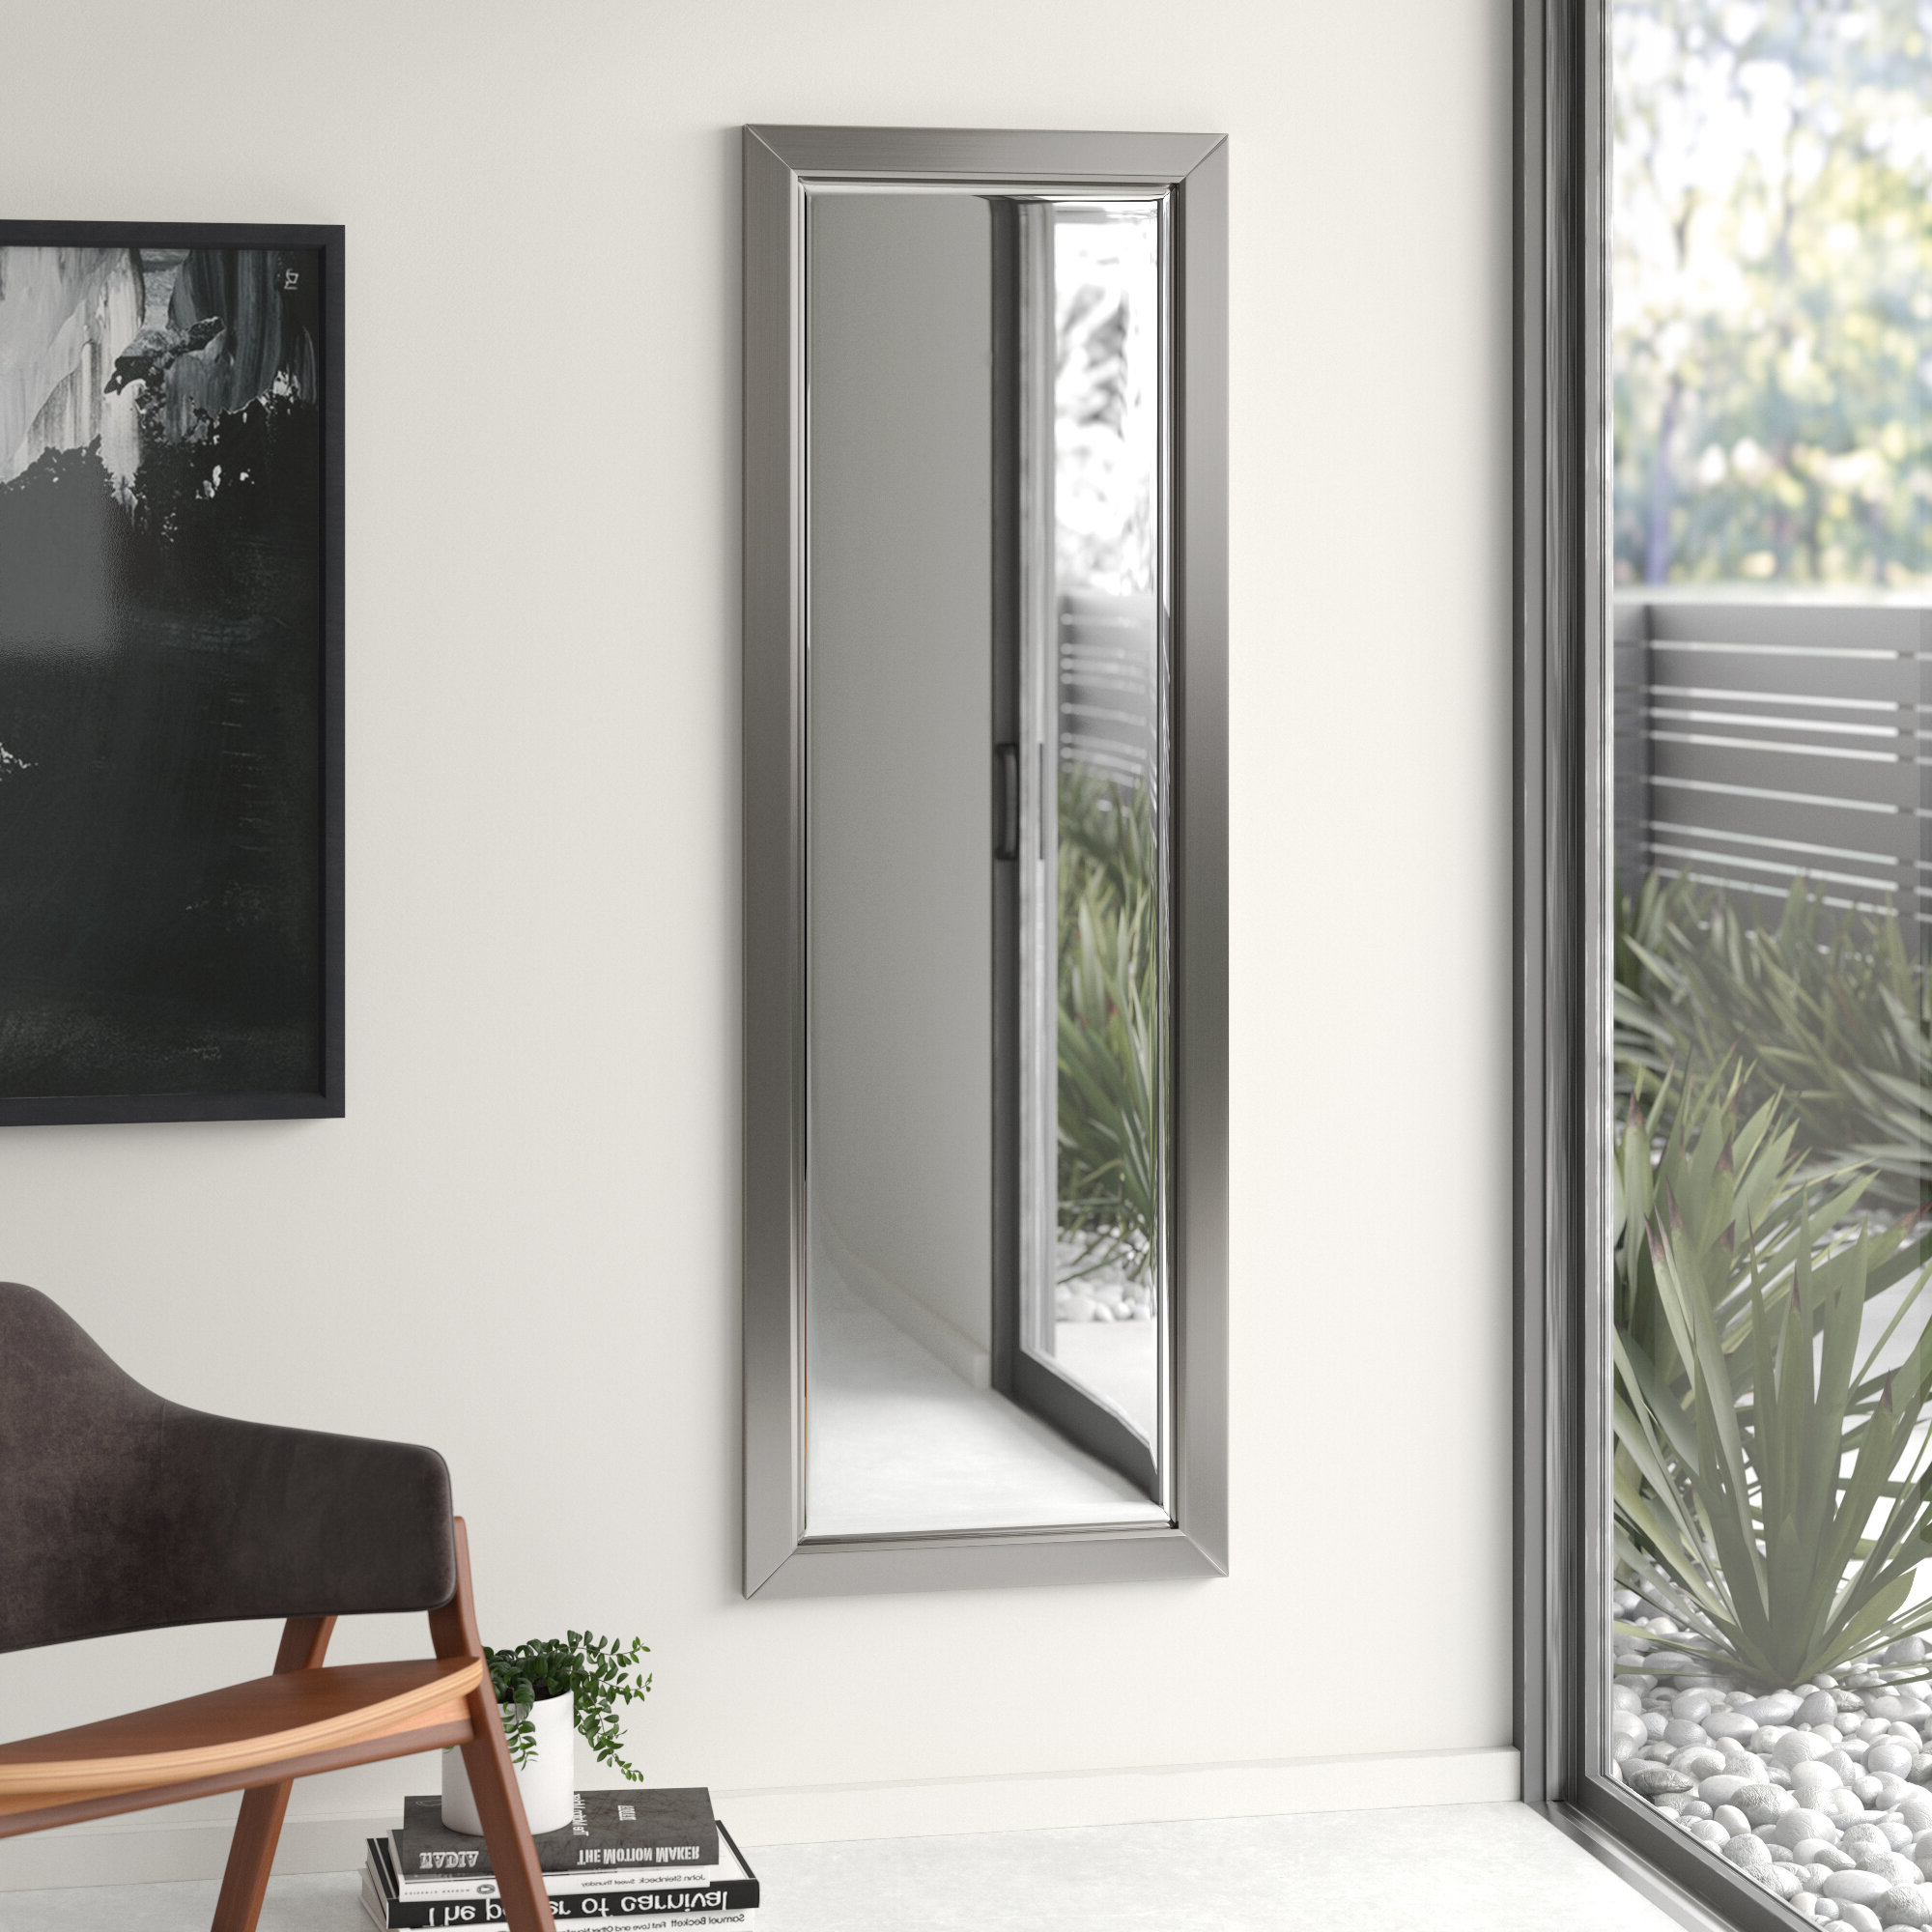 Current Sartain Modern & Contemporary Wall Mirrors Intended For Edge Minimal Modern & Contemporary Full Length Body Mirror (Gallery 7 of 20)